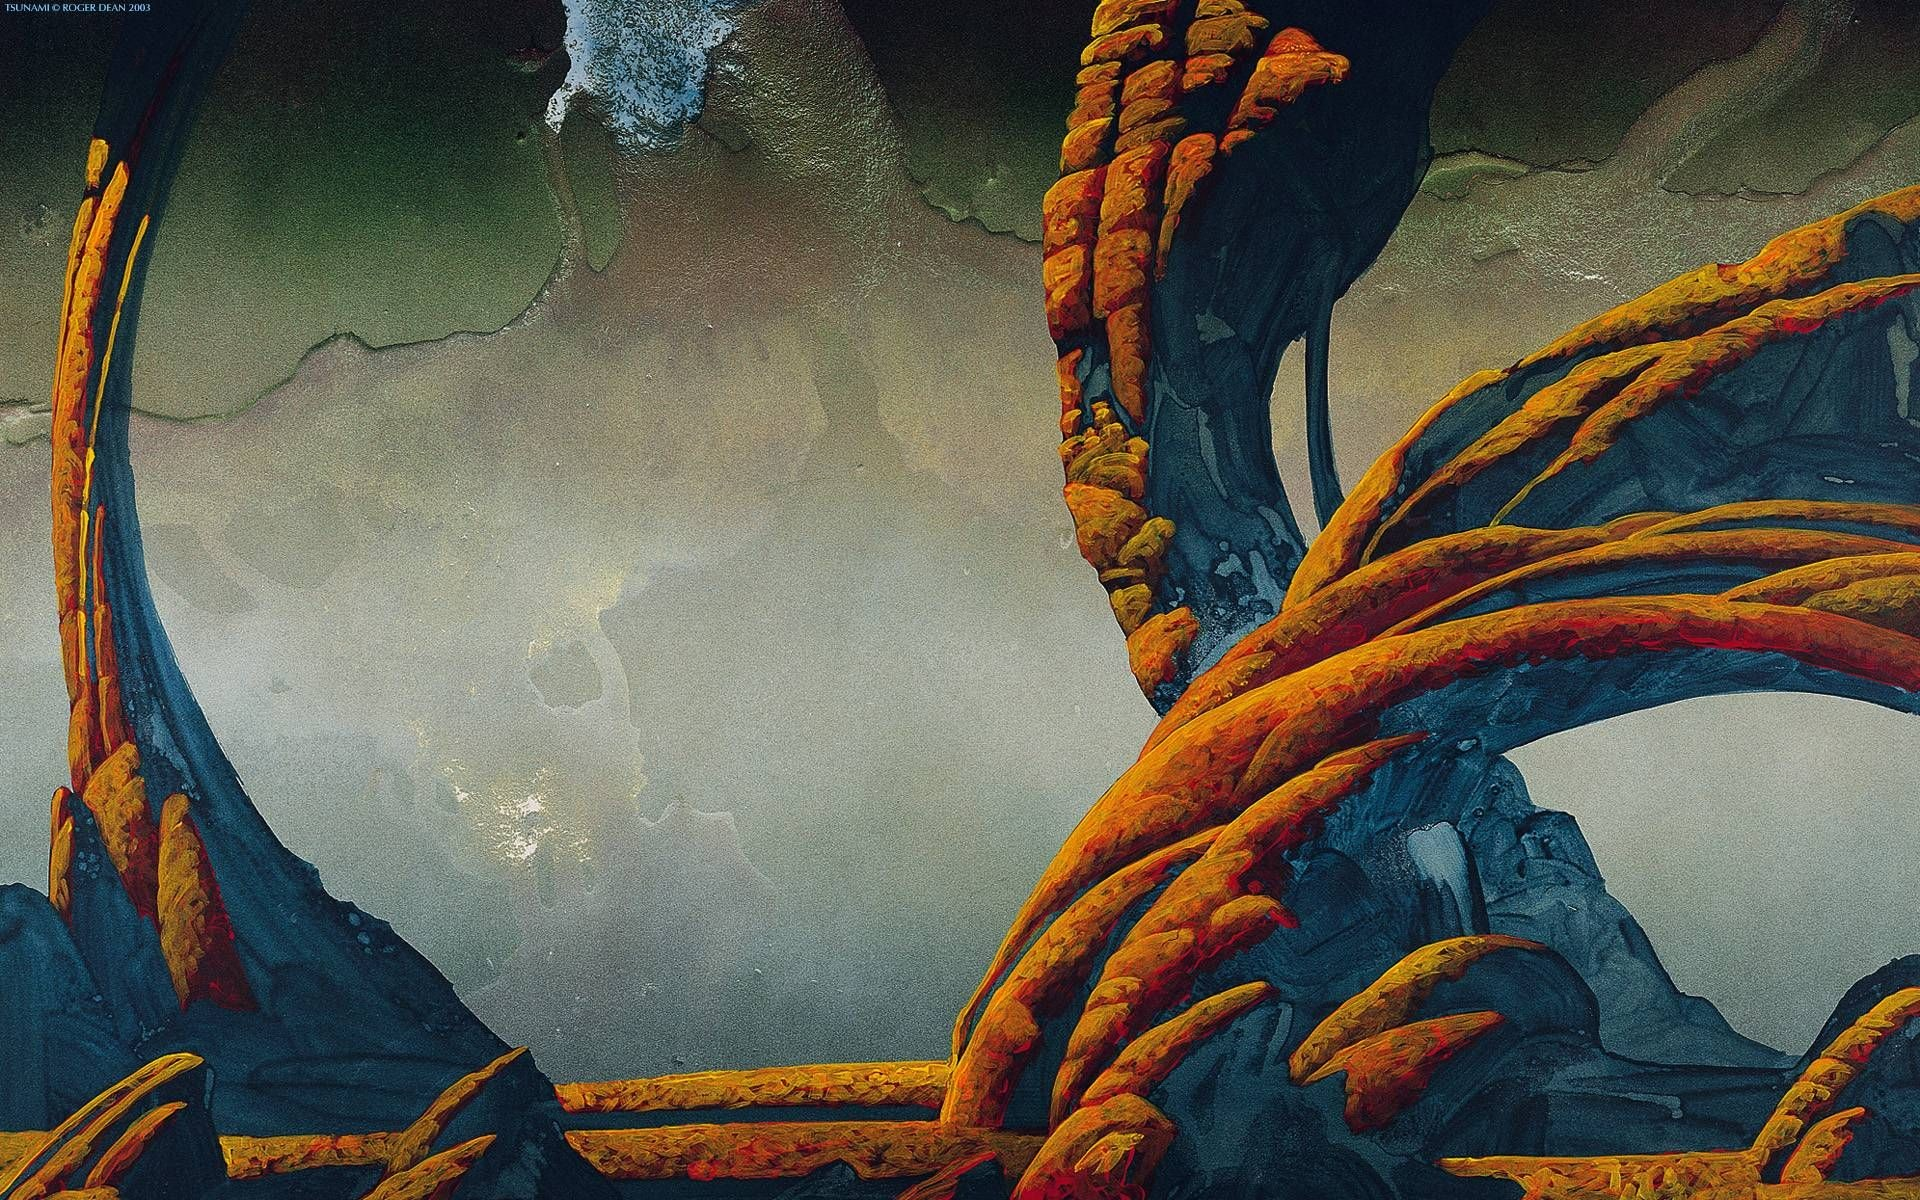 1920x1200 Download Roger Dean Wallpaper  | Wallpoper #374106